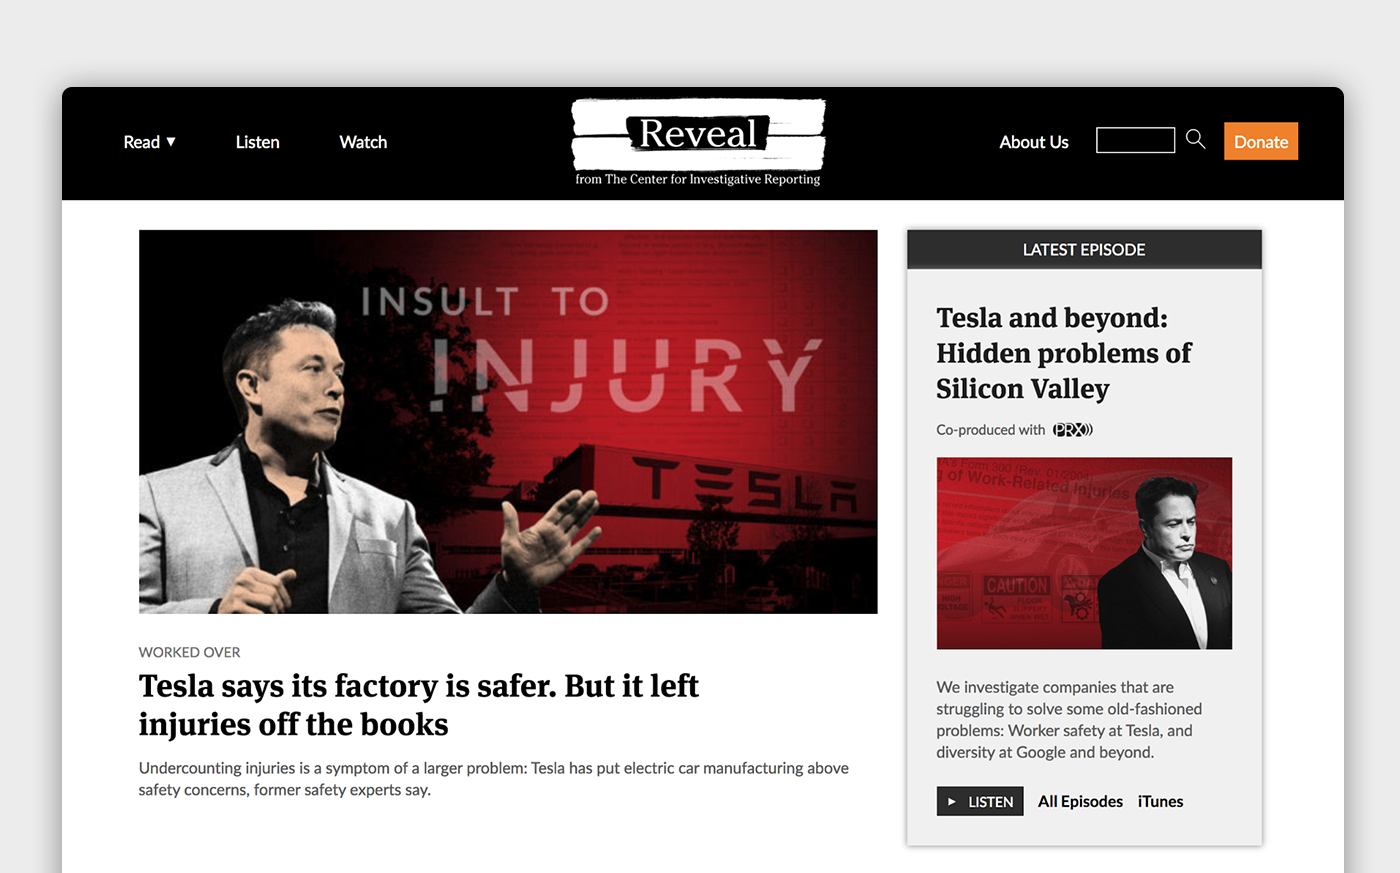 The main page of Reveal with navigation, featured article, and additional content